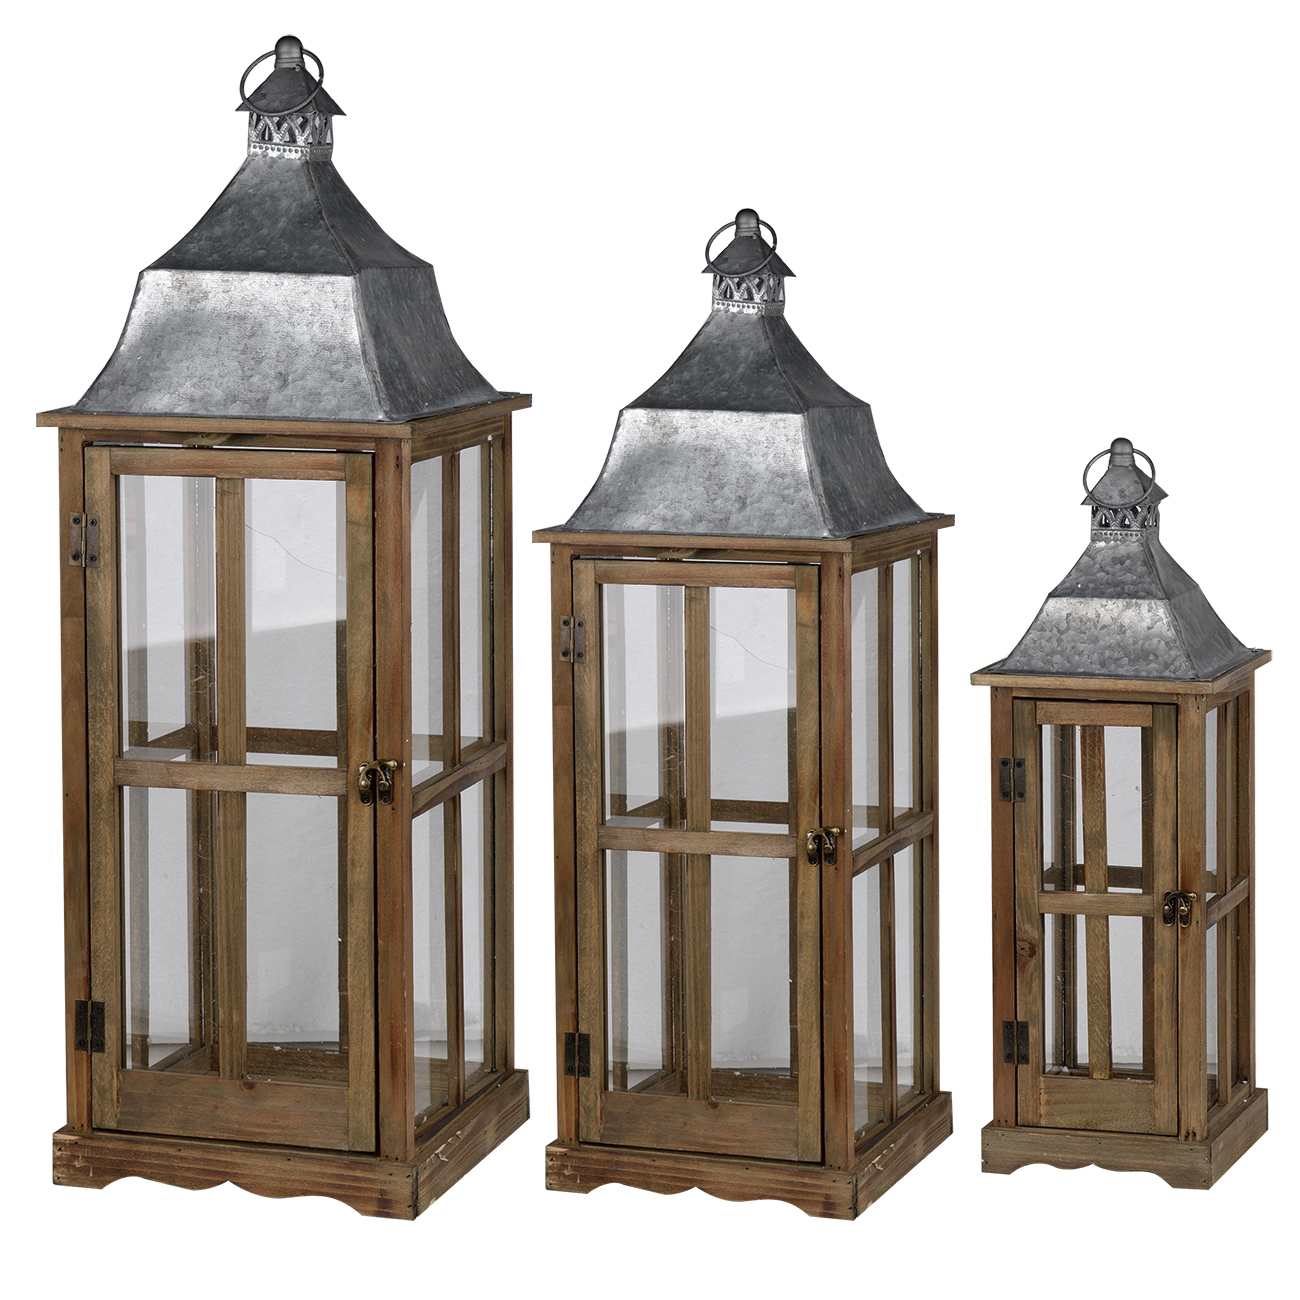 Wood/Galvanized Lantern